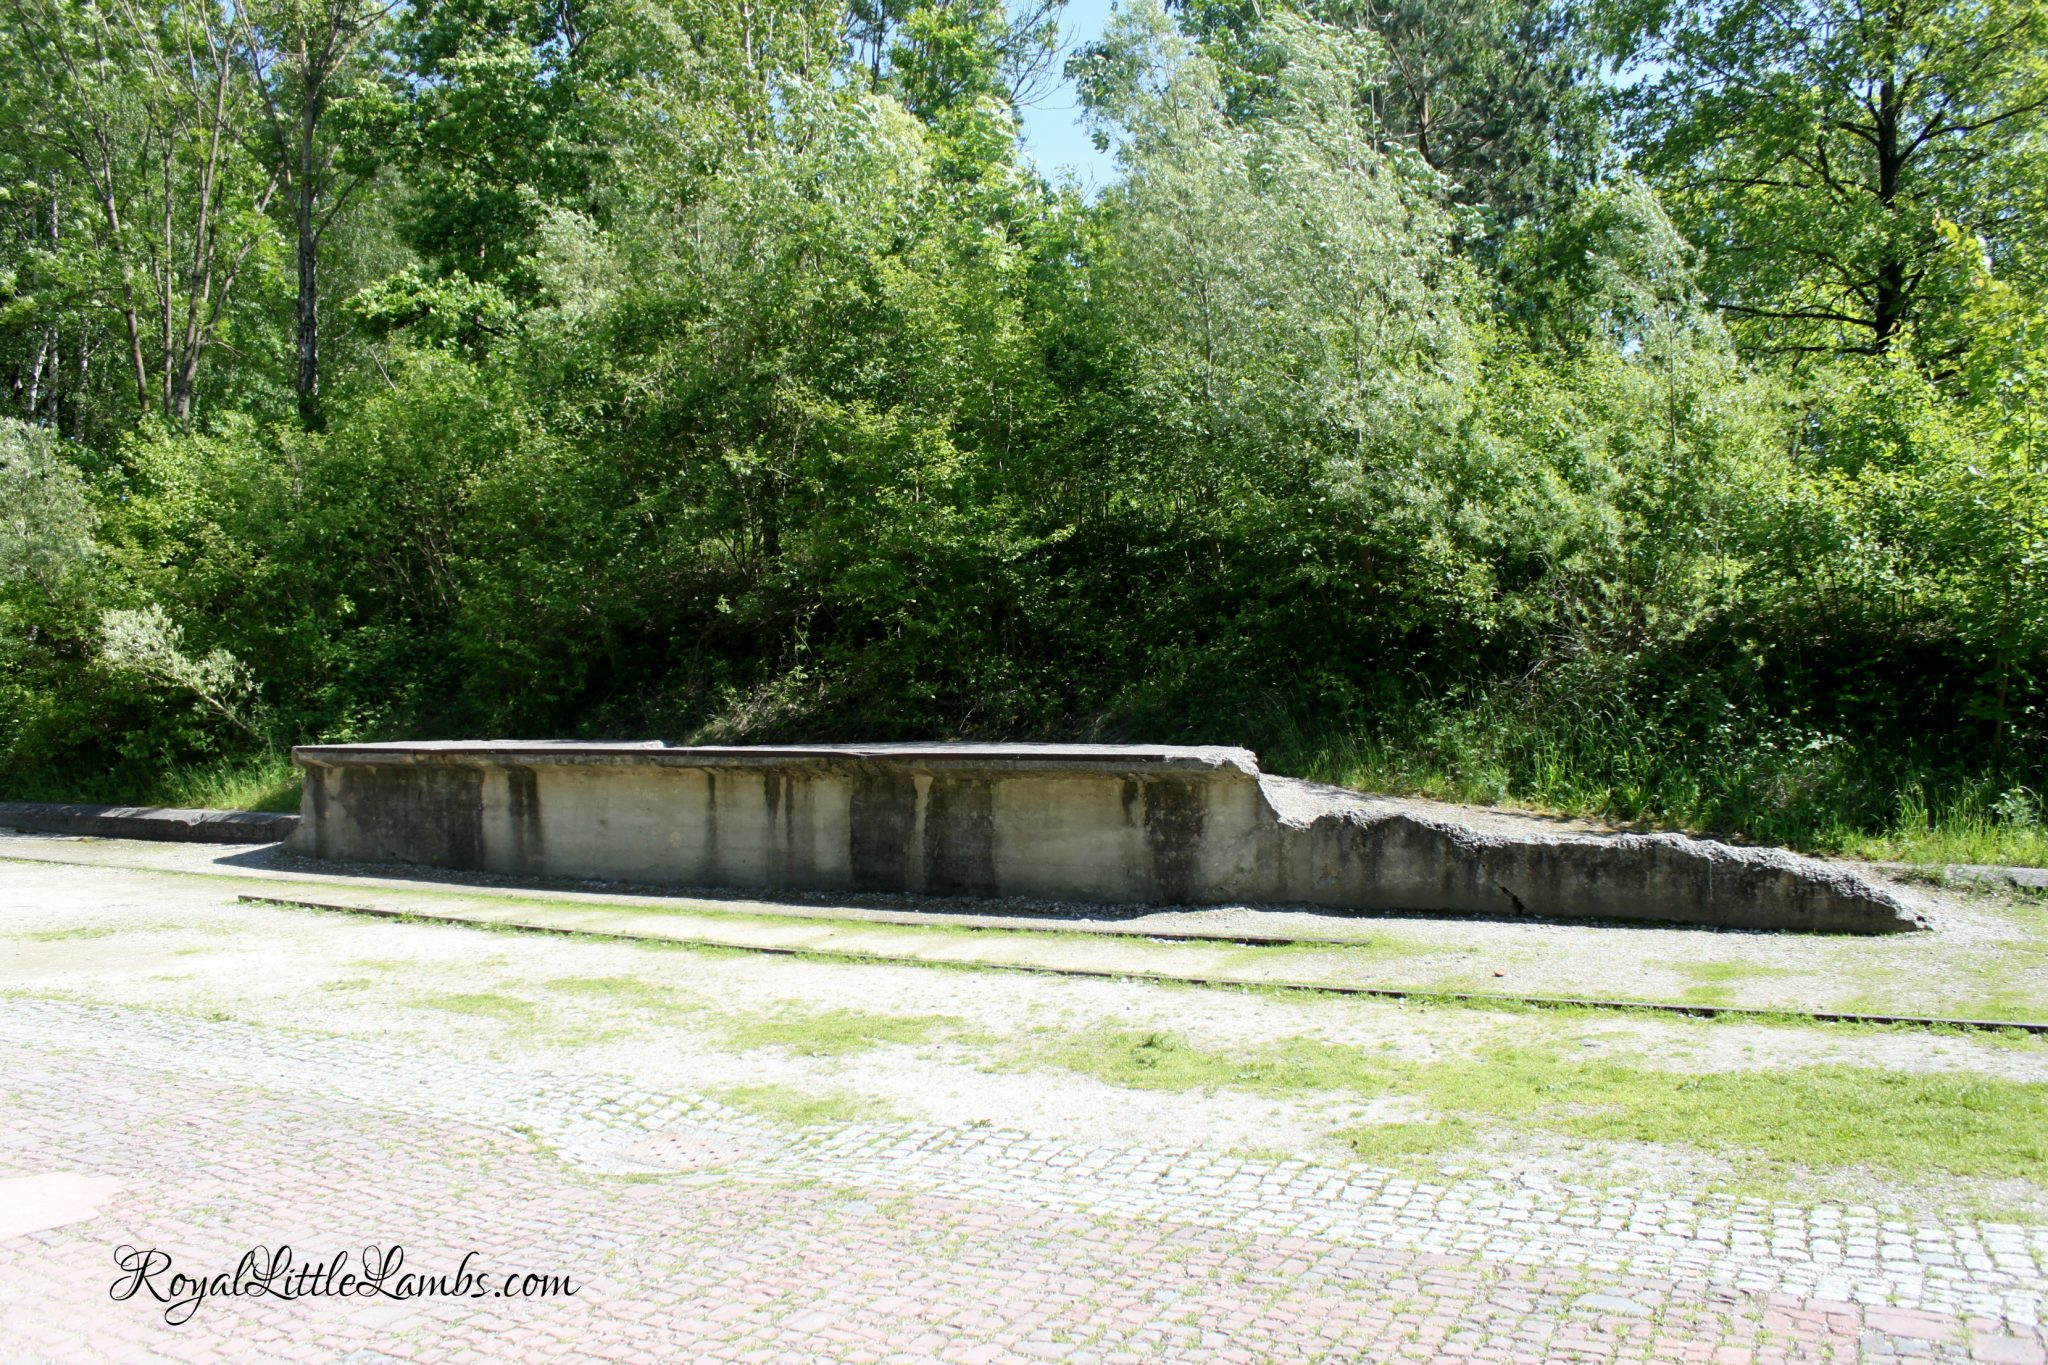 Dachau Railroad Track and Platform